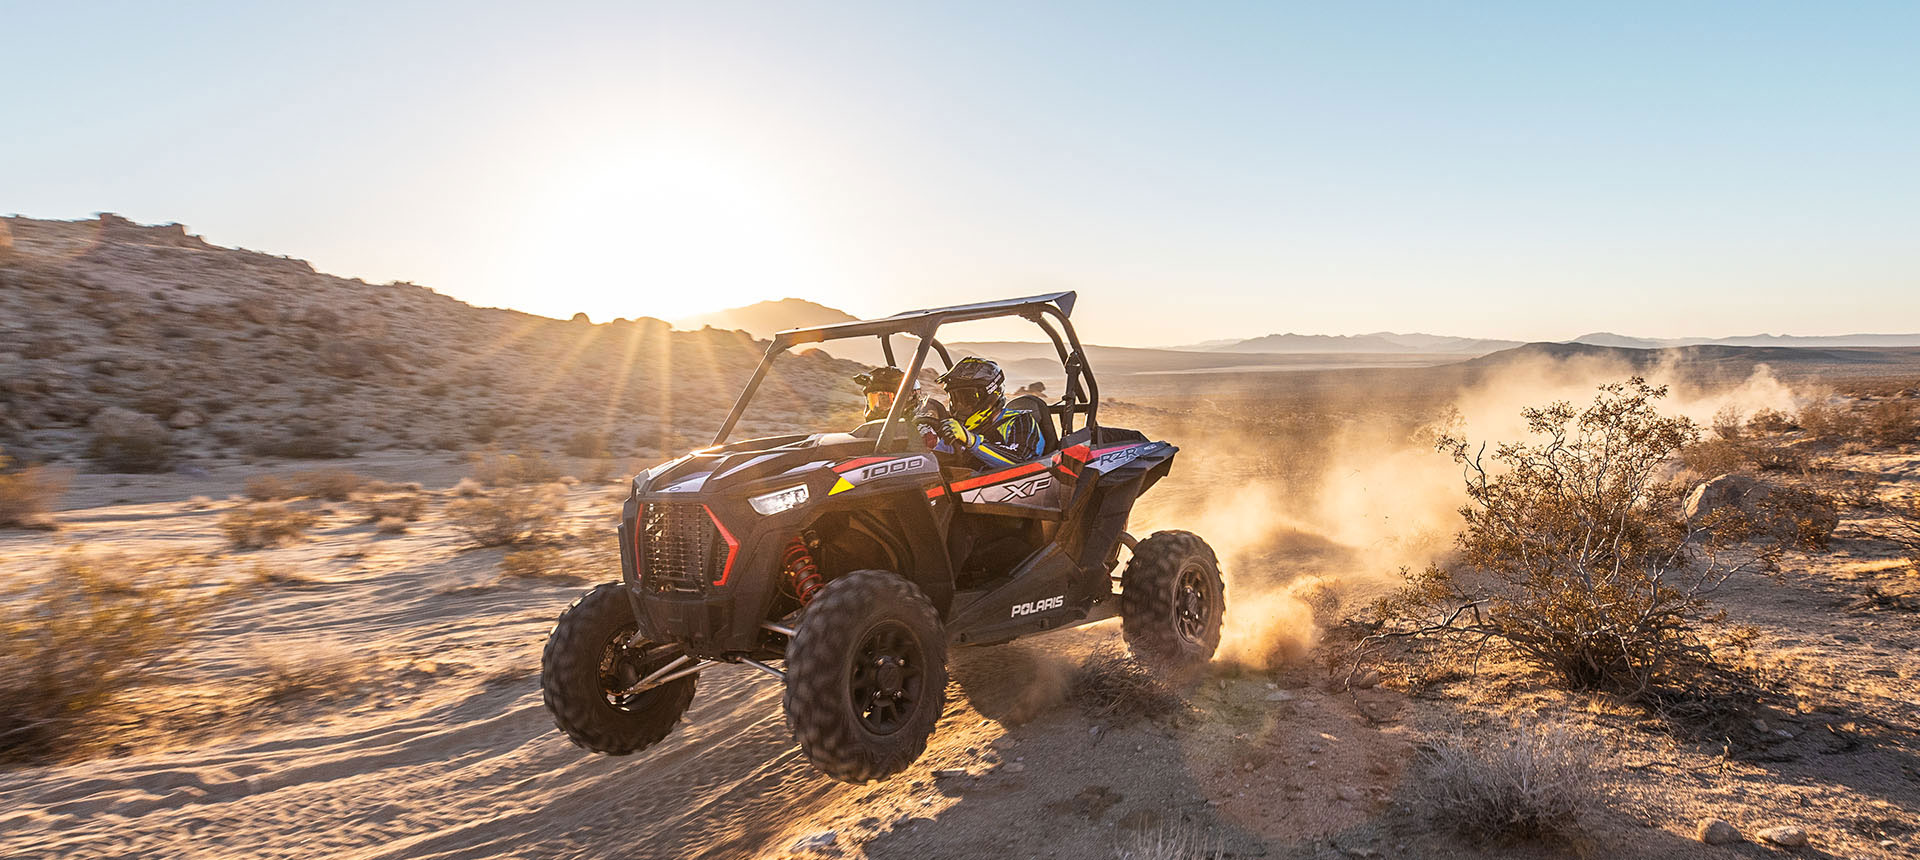 2019 Polaris RZR XP 1000 in Logan, Utah - Photo 11